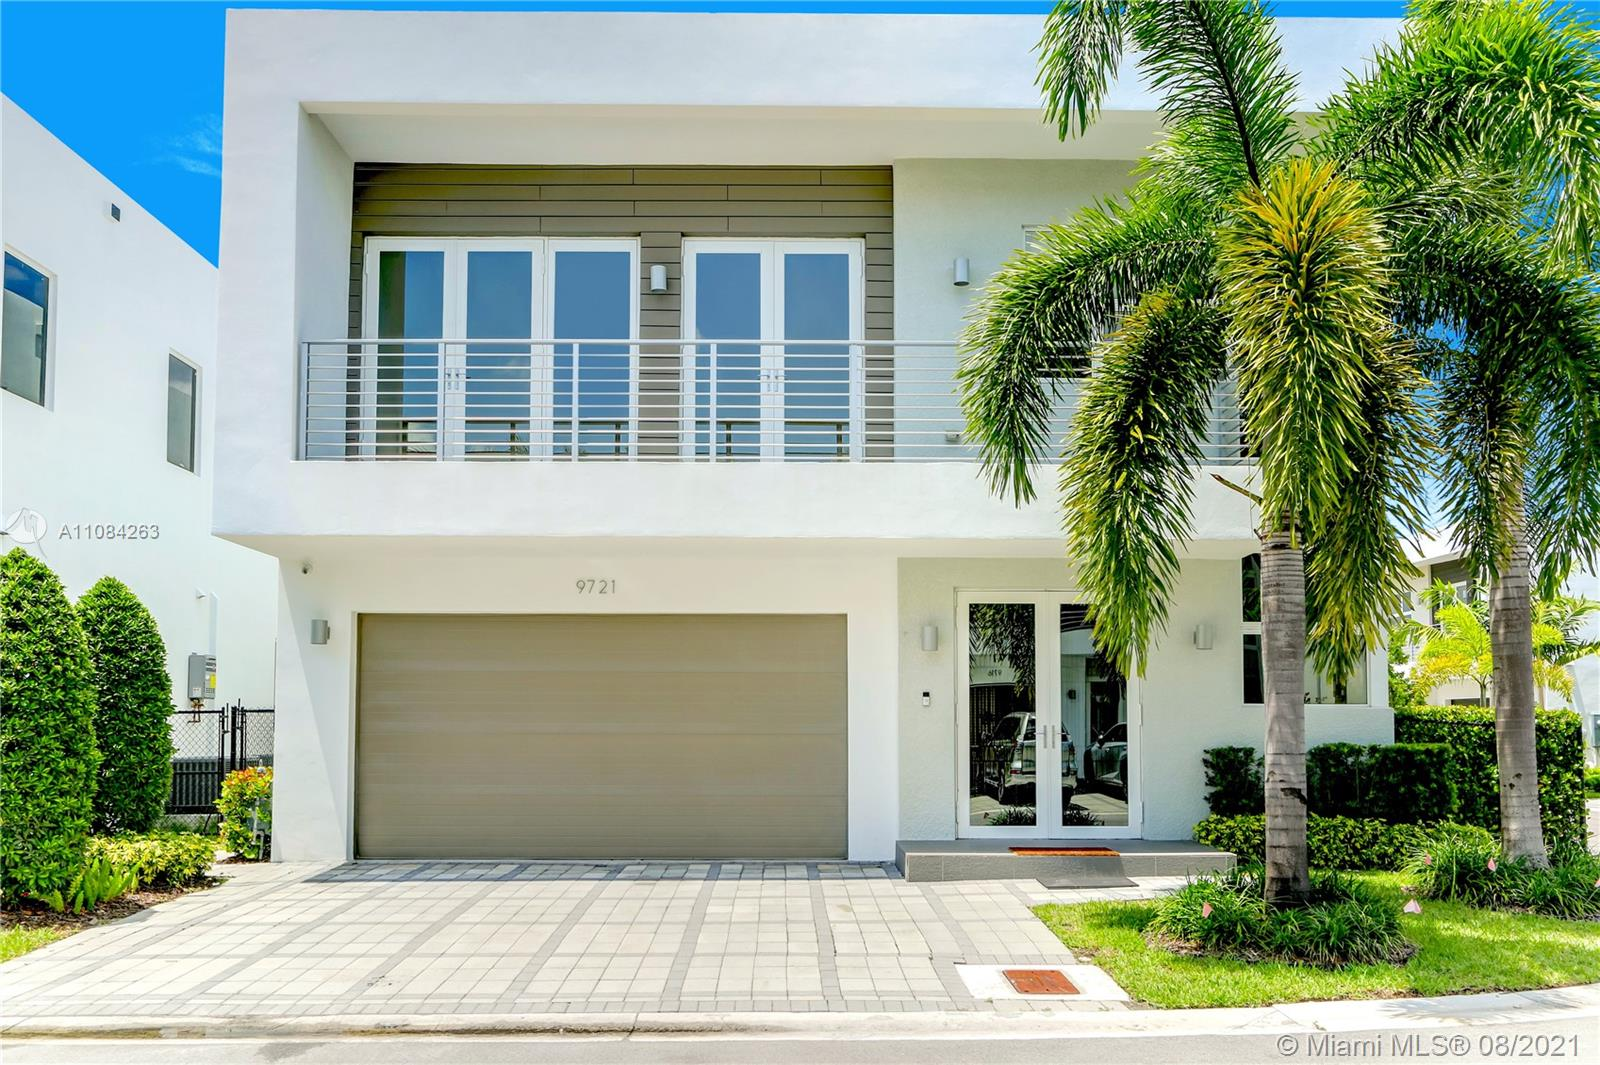 Doral Commons Residential - 9721 NW 74th Ter, Doral, FL 33178